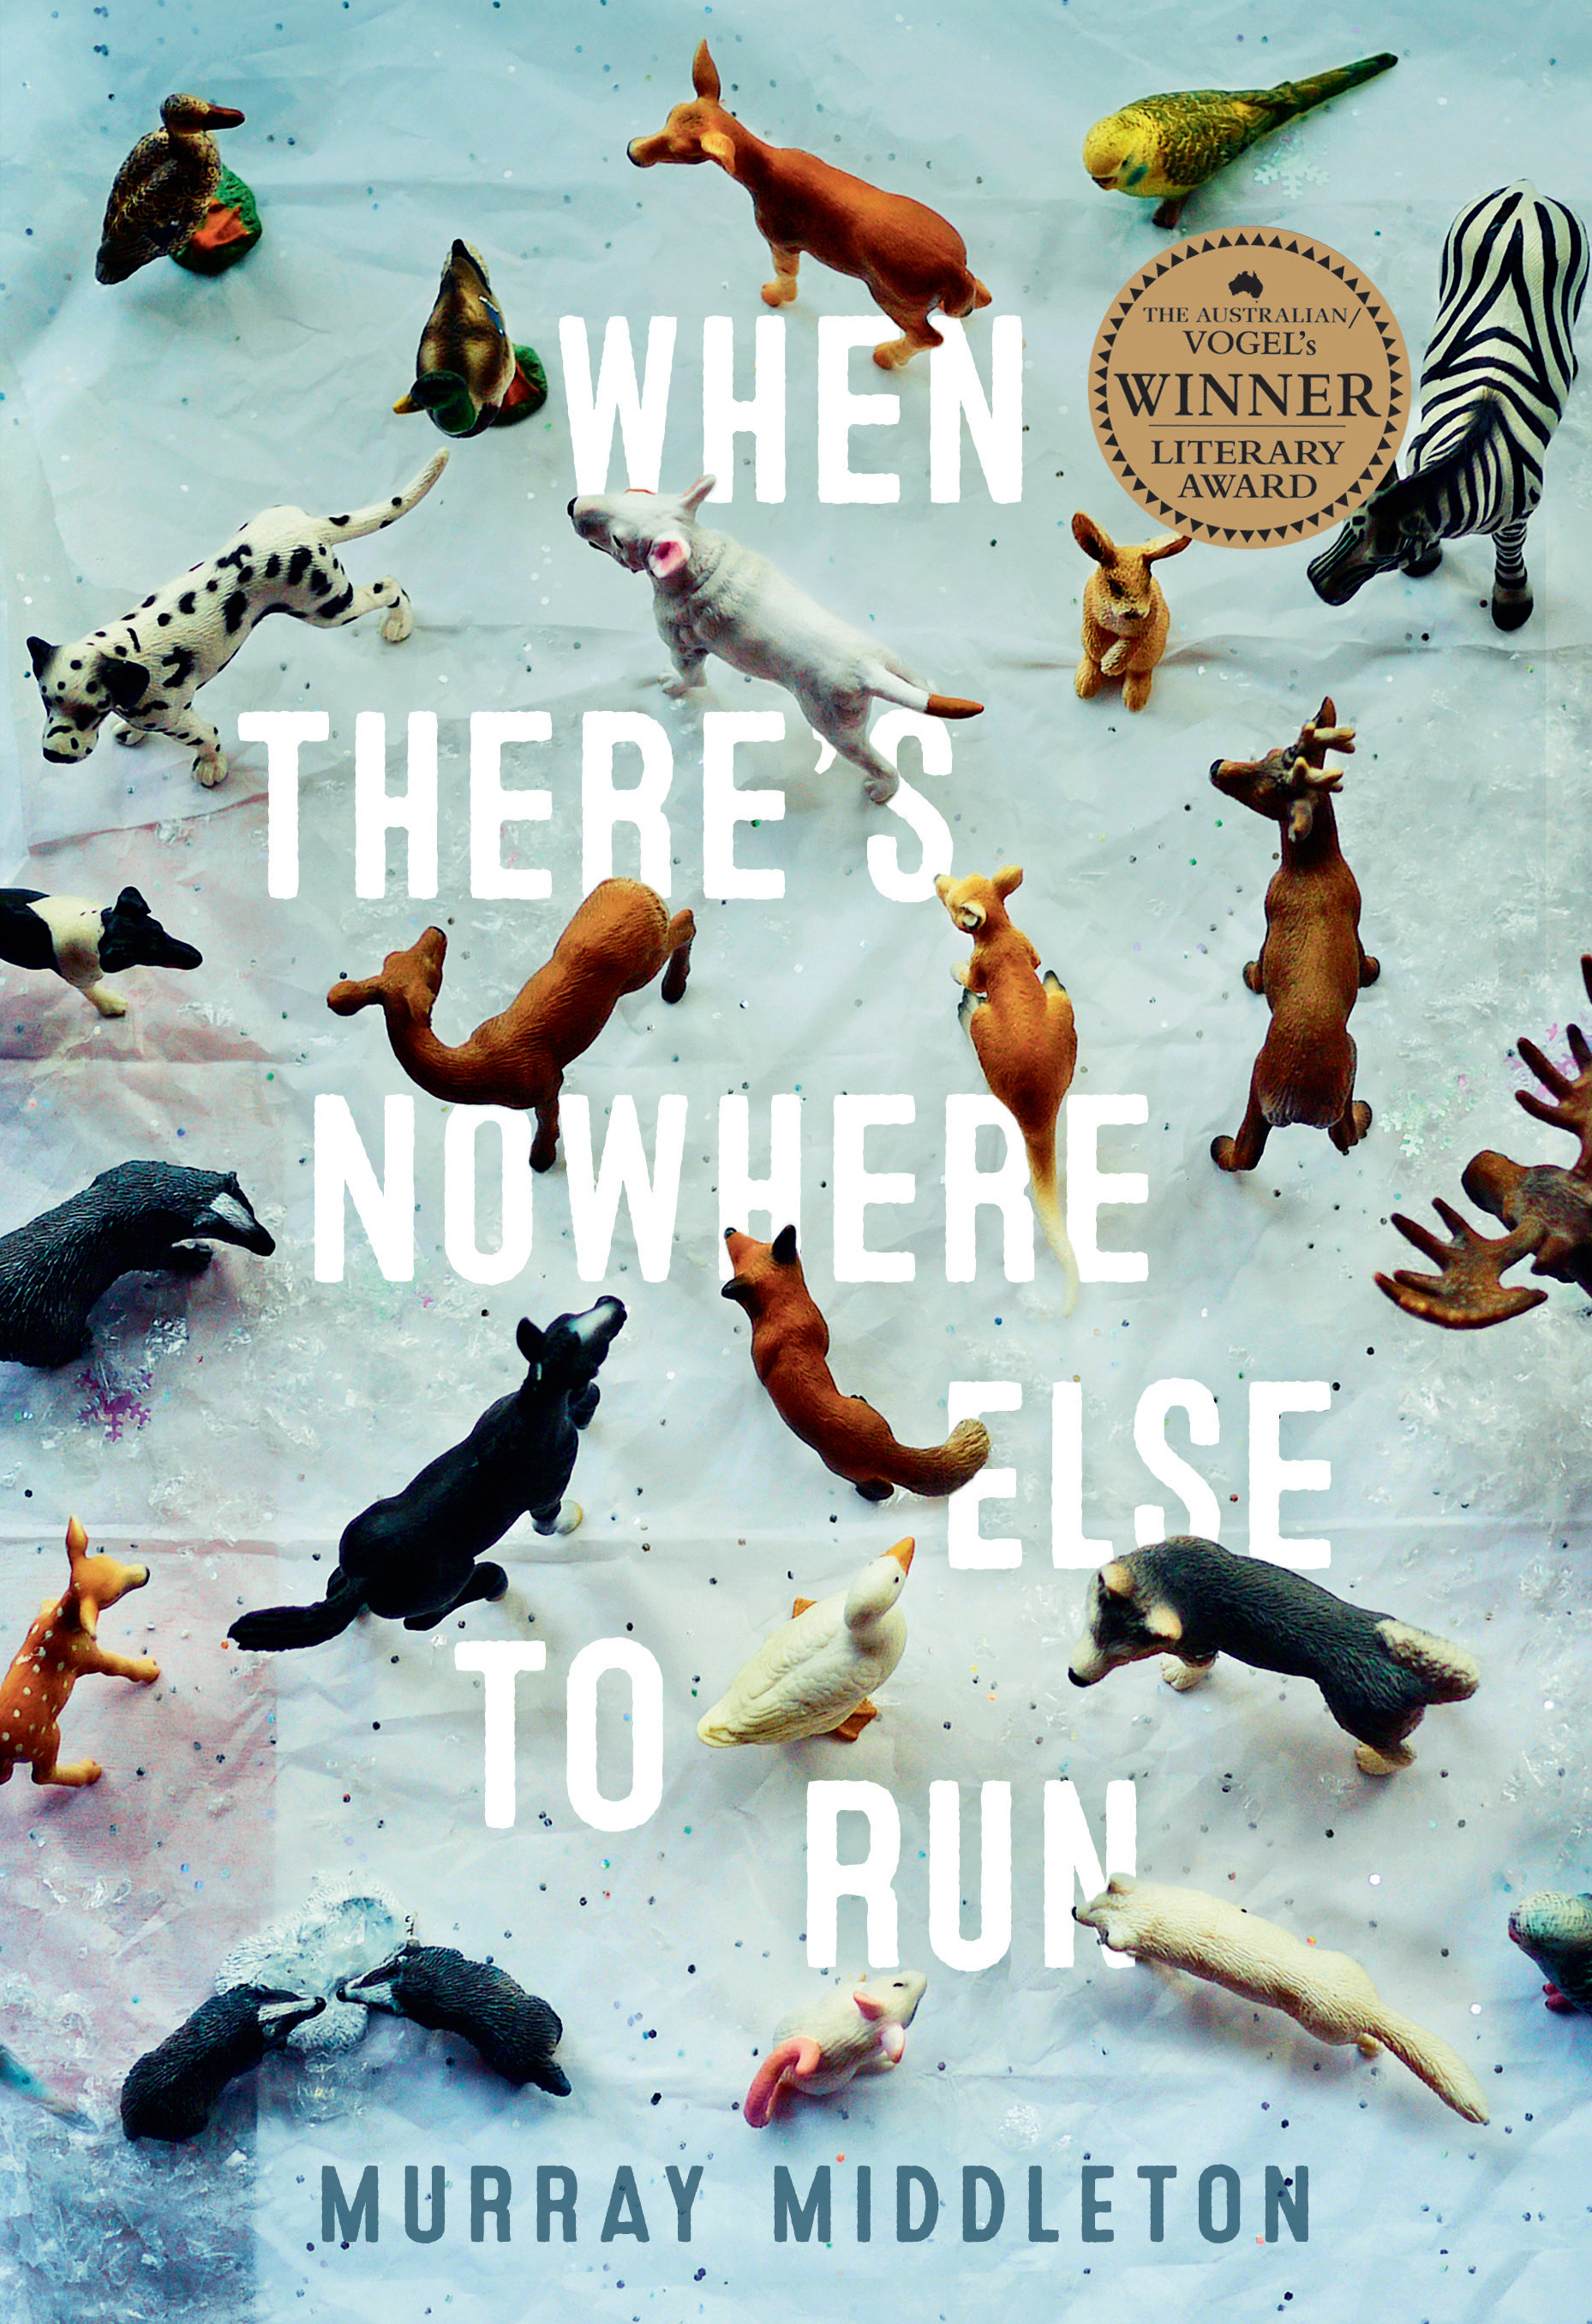 When There's Nowhere Else to Run by Murray Middleton, ISBN: 9781760292584